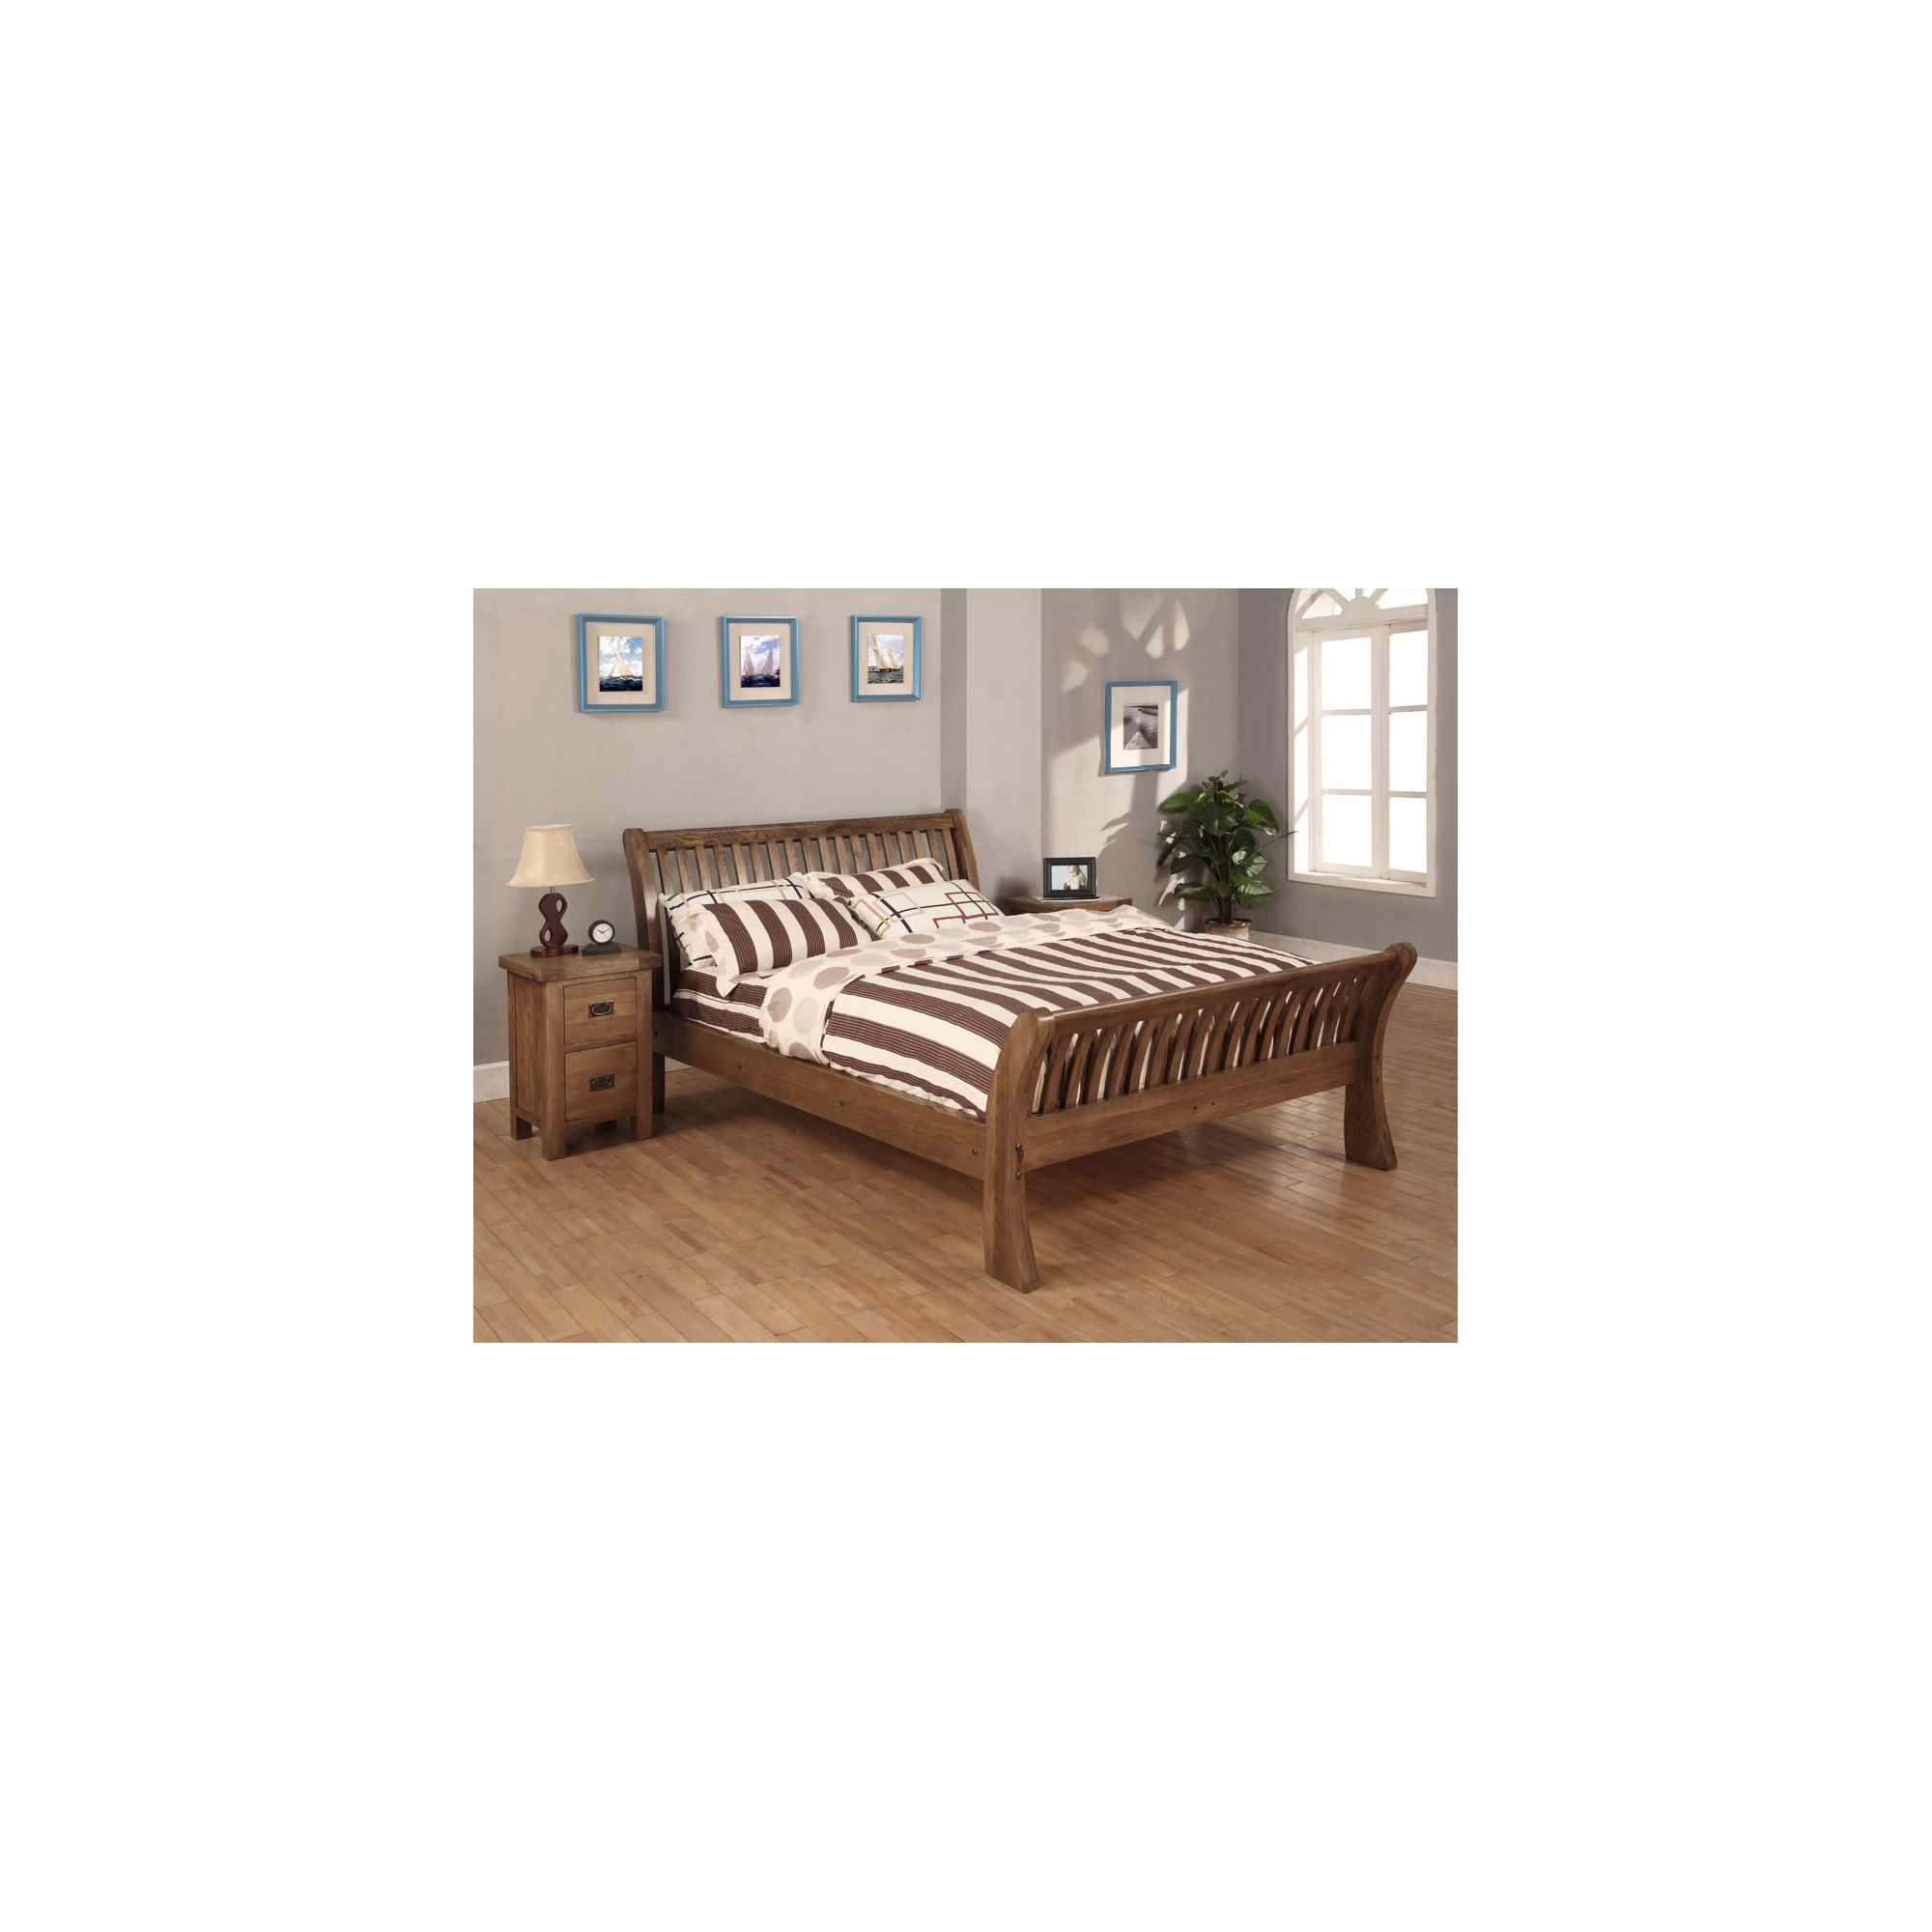 Hawkshead Brooklyn Bed Frame - 6' Super King at Tesco Direct